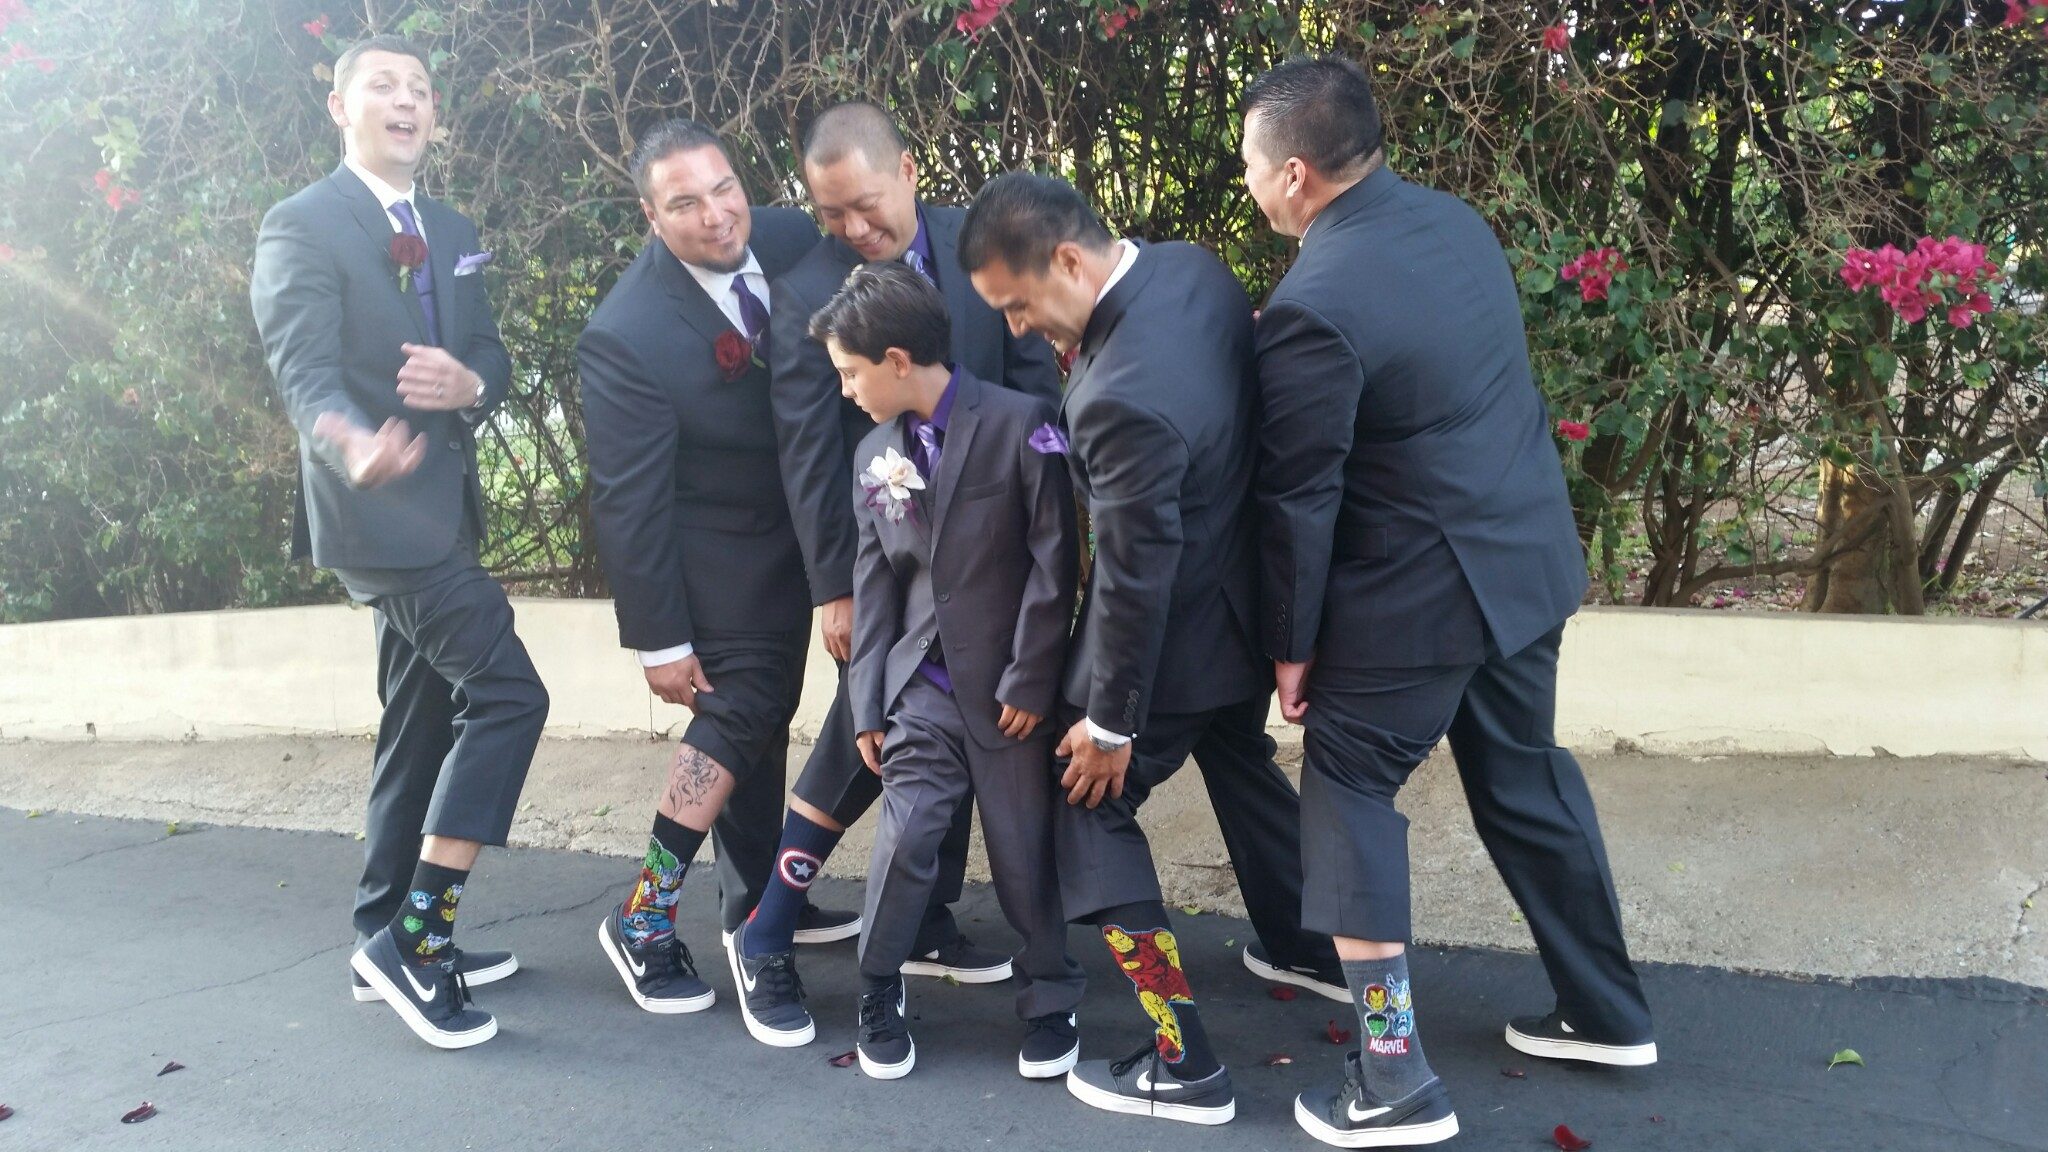 Show off your socks boys!! Estate Weddings San Diego - Wedding Coordinator Day Of